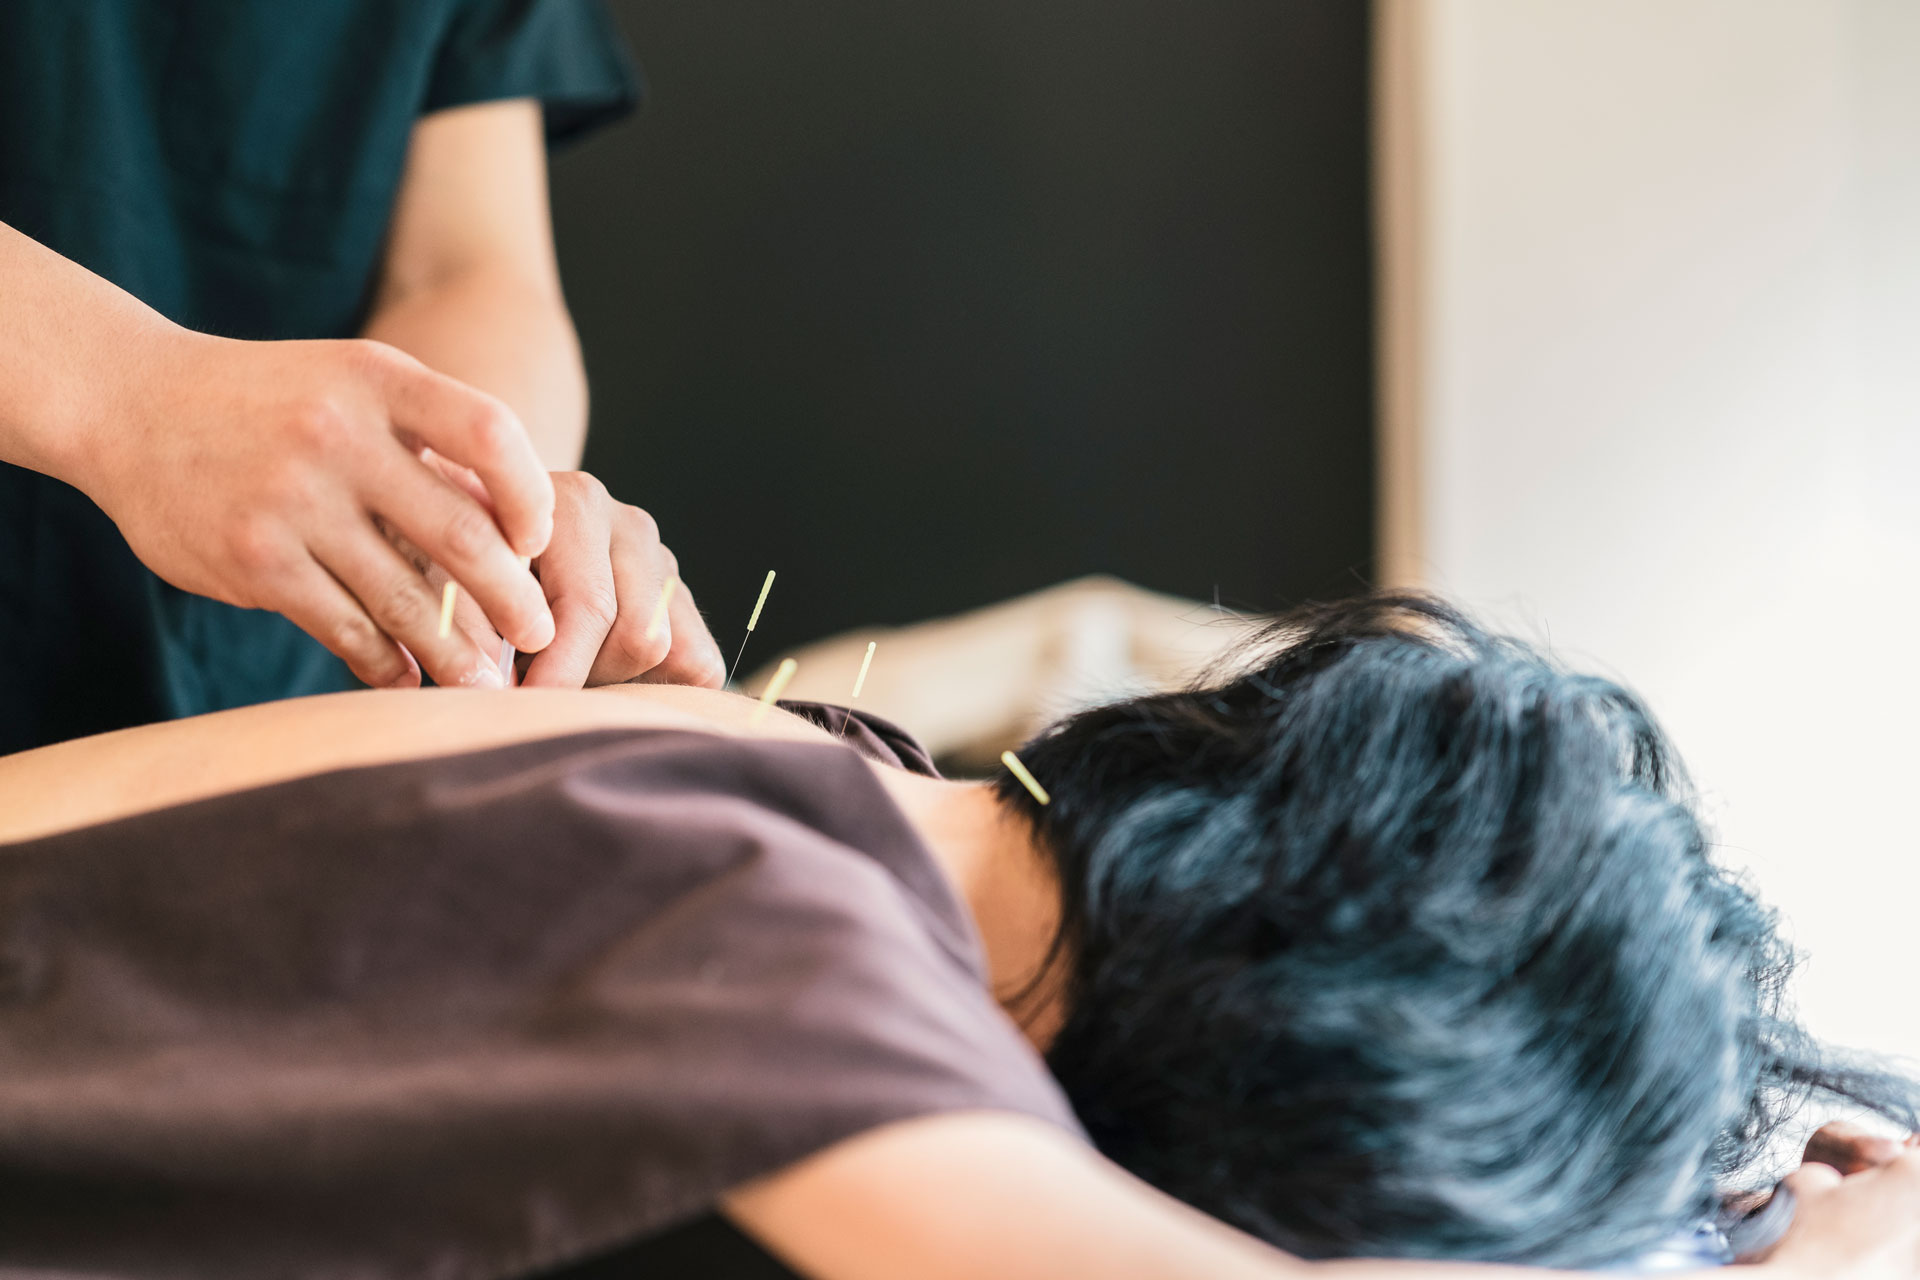 What Are The Benefits Of Acupuncture Treatments?